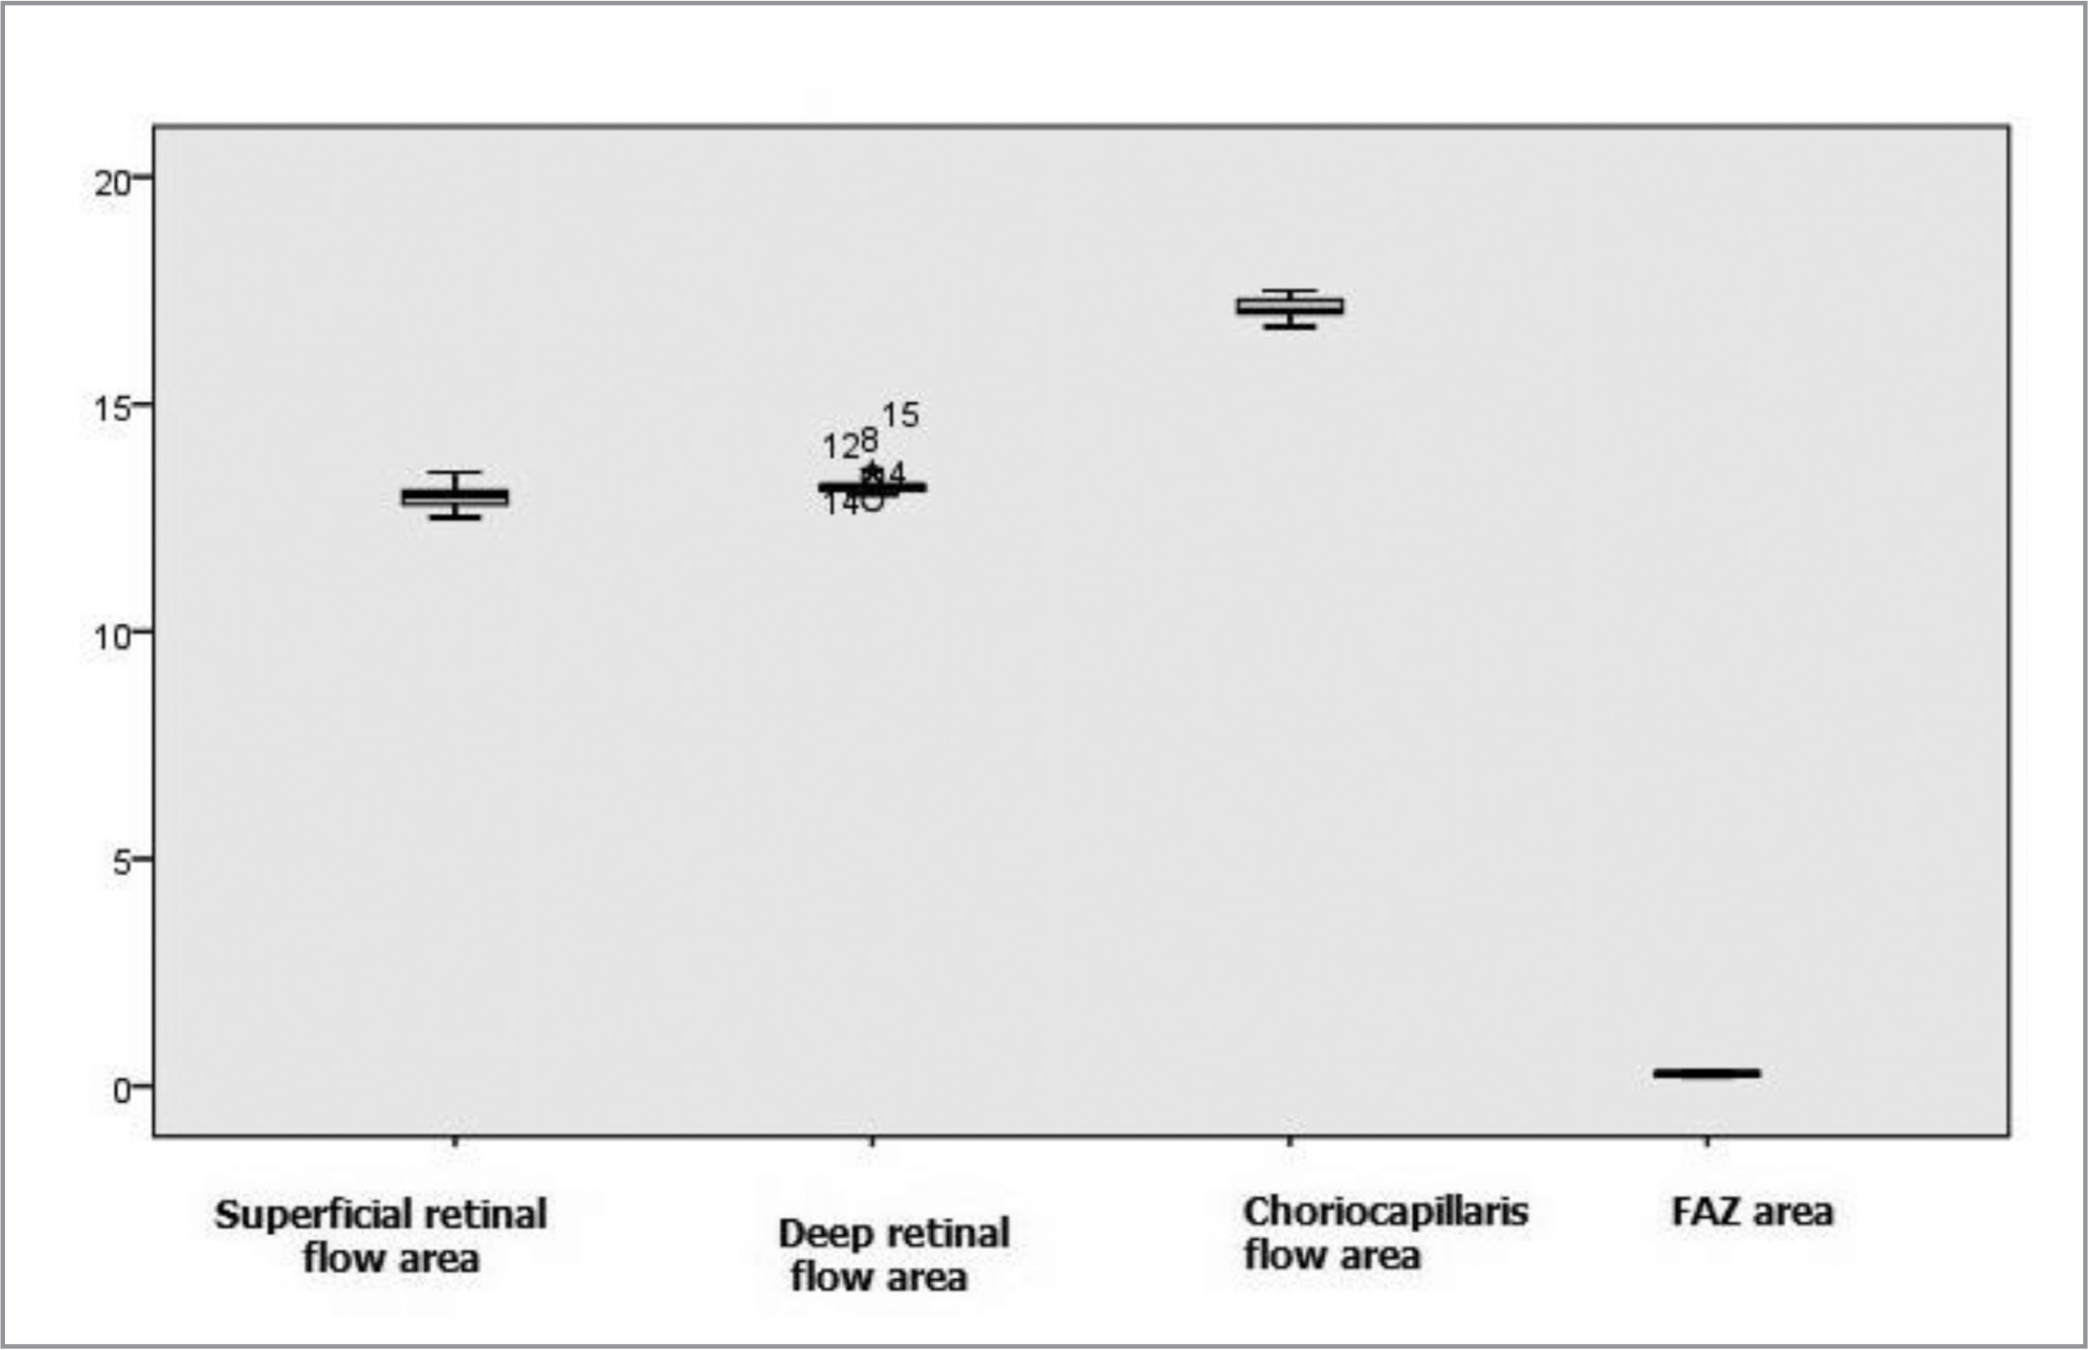 Boxplot analysis of macular flow area (superficial, deep, and choriocapillaris) and foveal avascular zone (FAZ) area in the study group after nicotine gum intake.